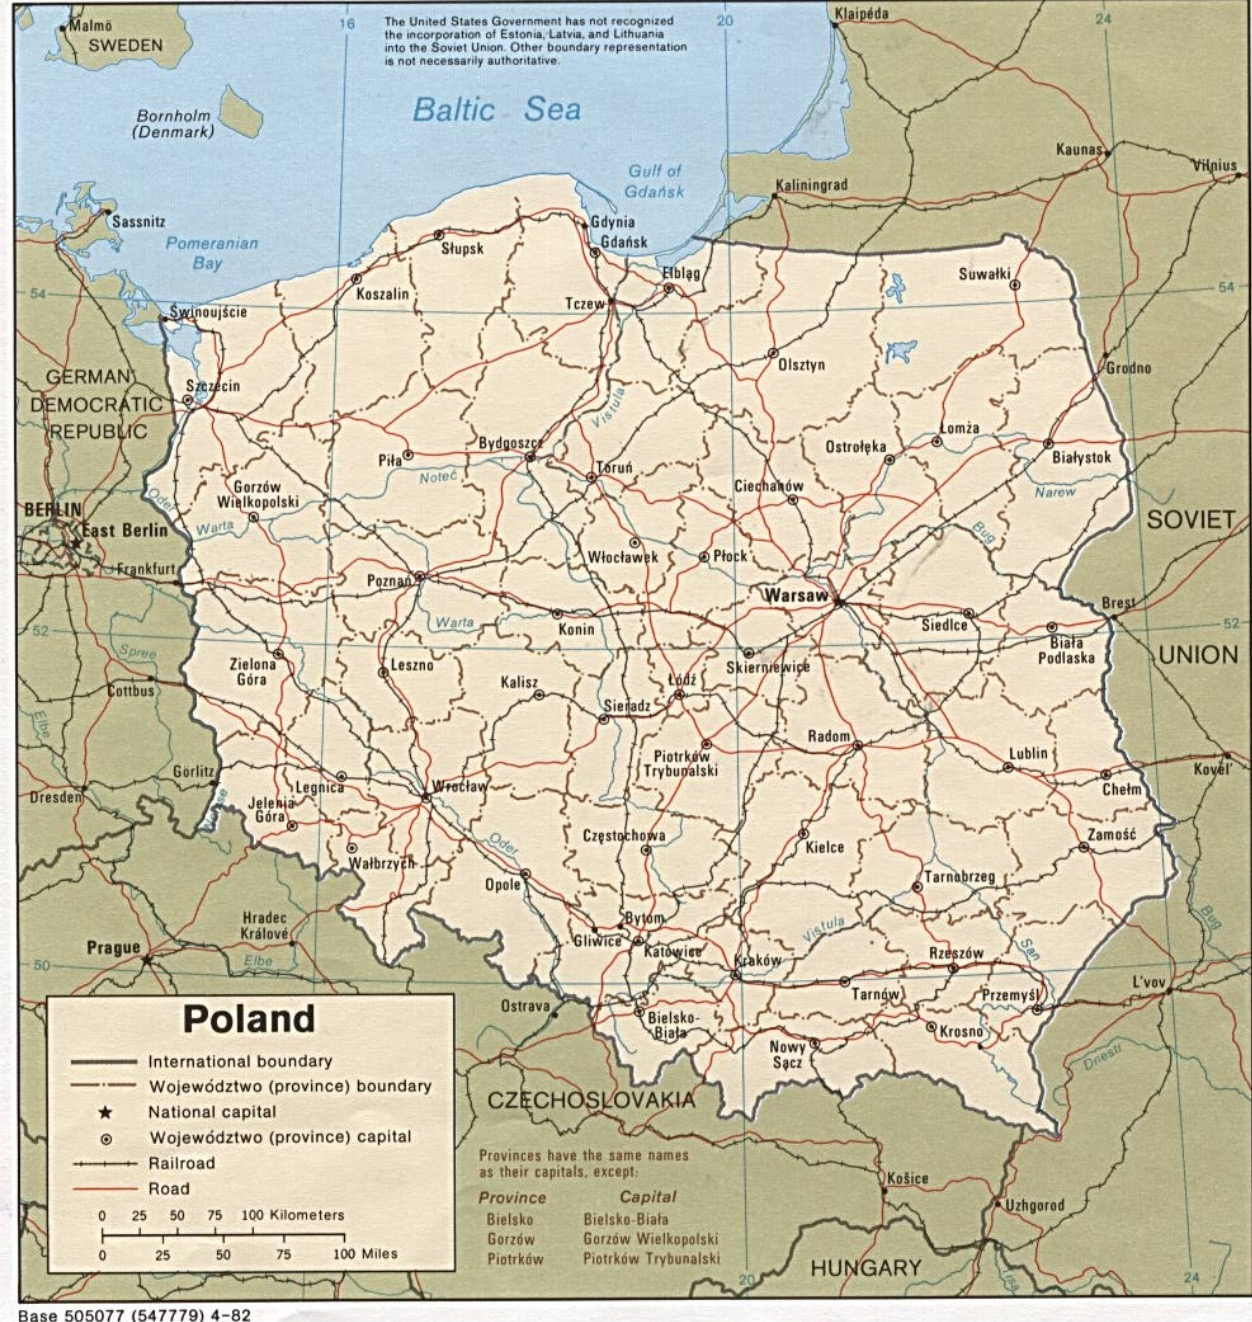 Map of Poland & Pictures from Two Trips to Poland: 1978 & 2018!Cyndi (2018 trip) & Lorraine(1978 trip) are first cousins..Cyndi's dad is Paul Bogden's son Edward, & Lorraine's mom is Paul's daughter Eleanor (also on the 1978 trip to Poland with Lorraine).